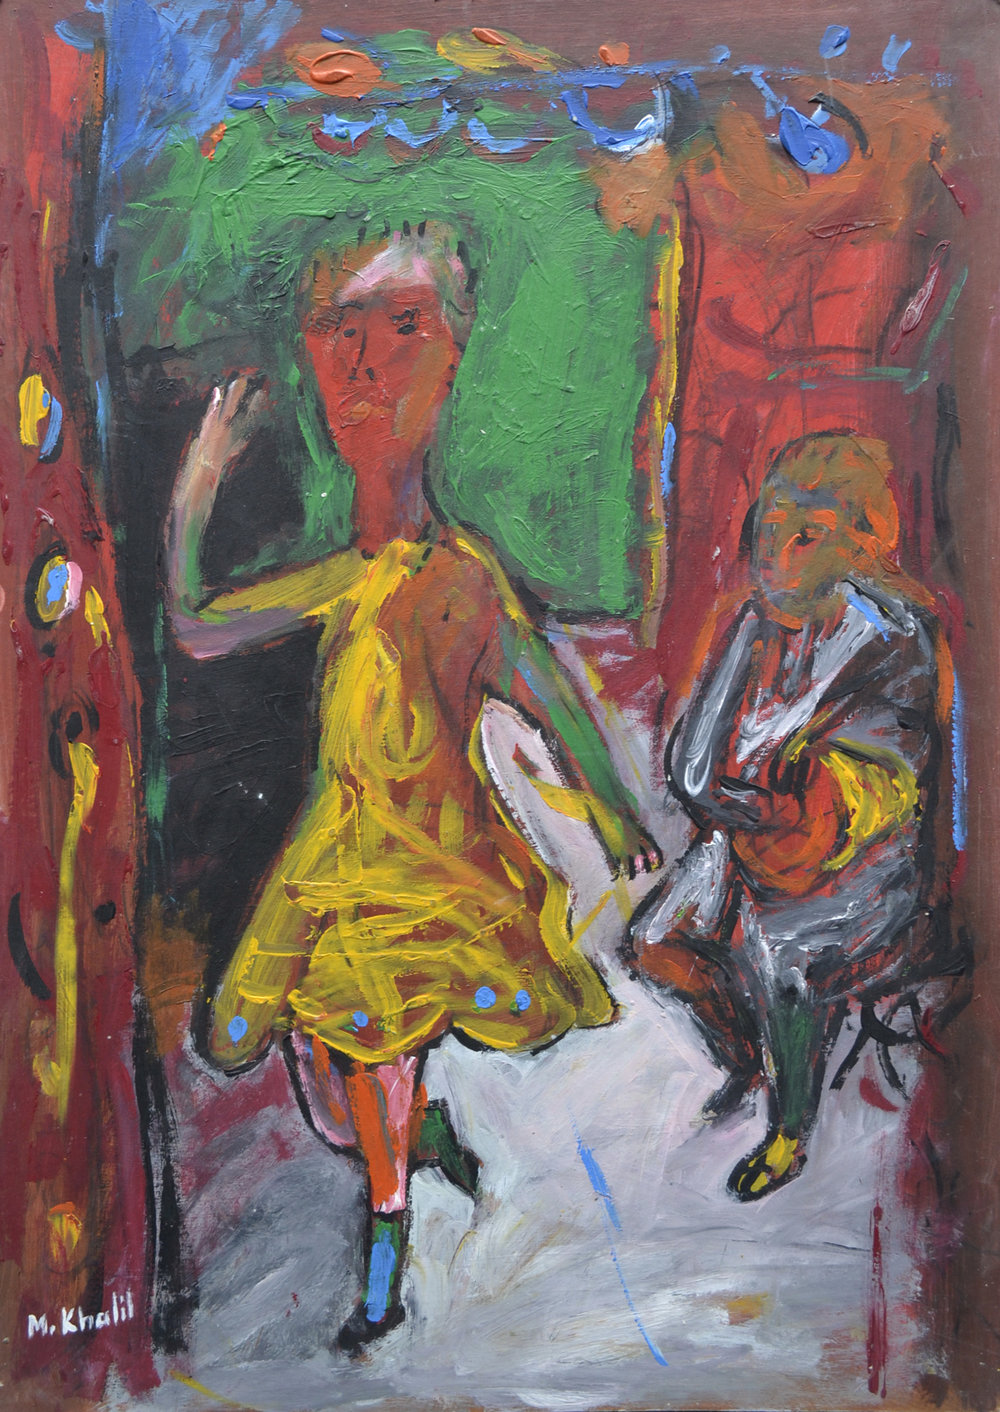 XOL Gallery - Mohamed Khalil (Palestine) - _Ancient Memories_ - 20 x28 in - Acrylic on cardboard - Paris 2001 - $1,500.00.jpg